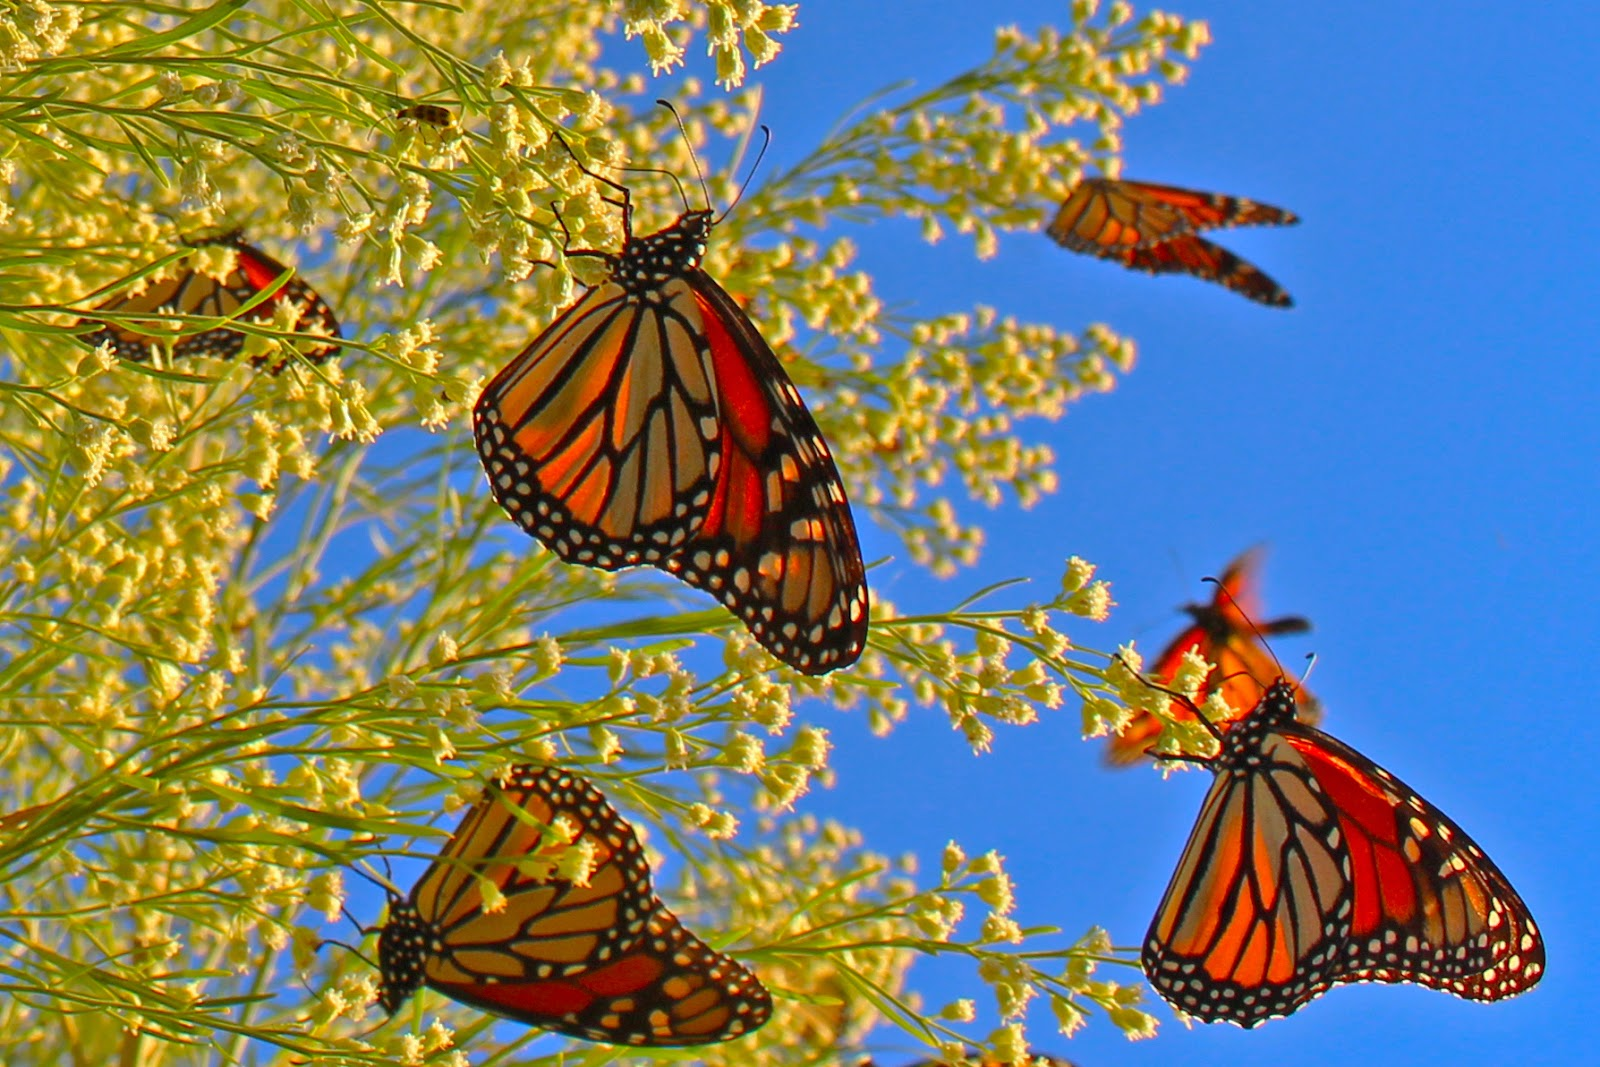 Monarch butterfly migration tree - photo#28